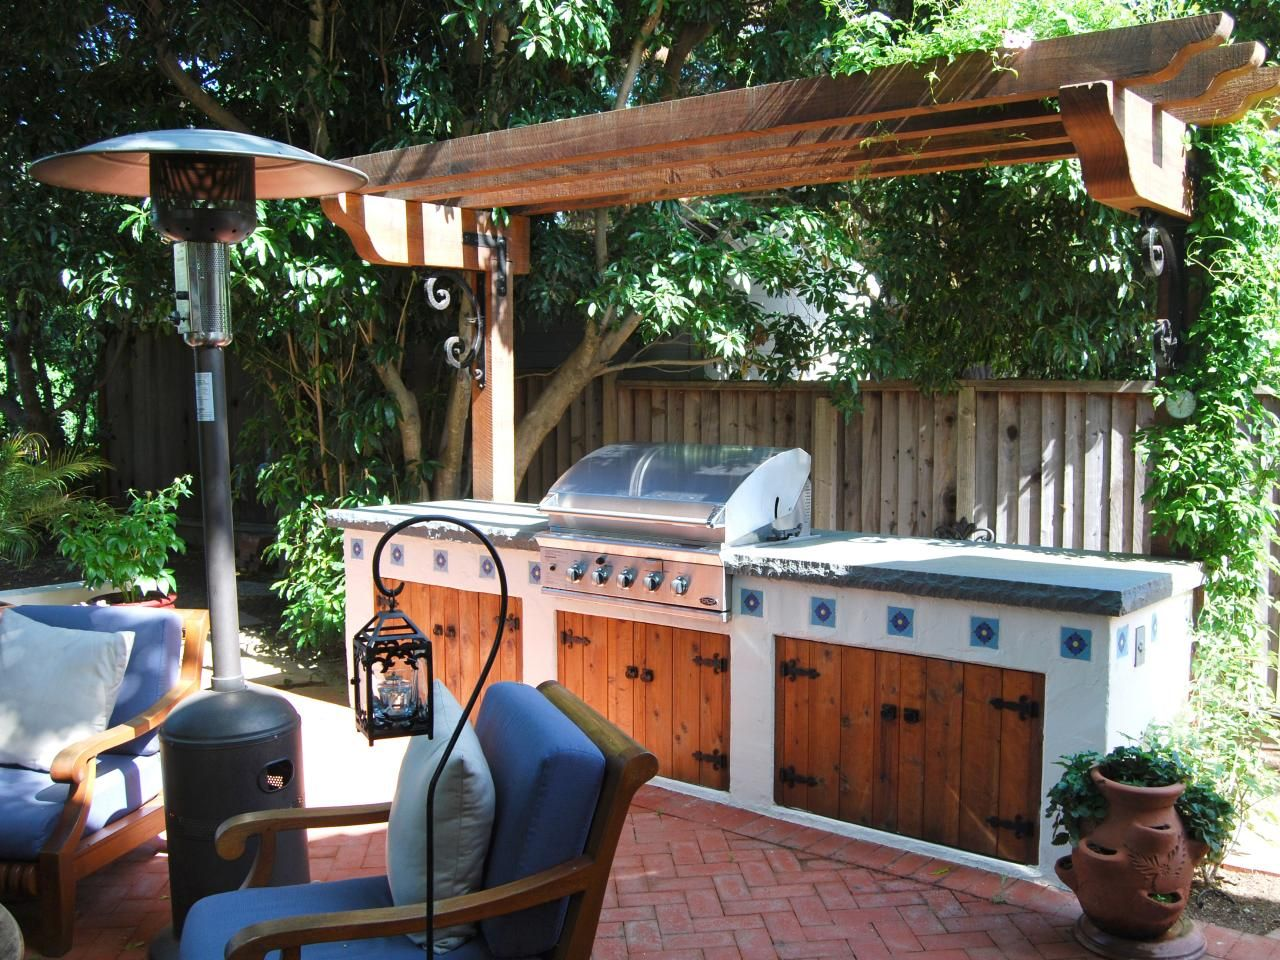 A Wooden Pergola Shades This Southwestern Style Outdoor